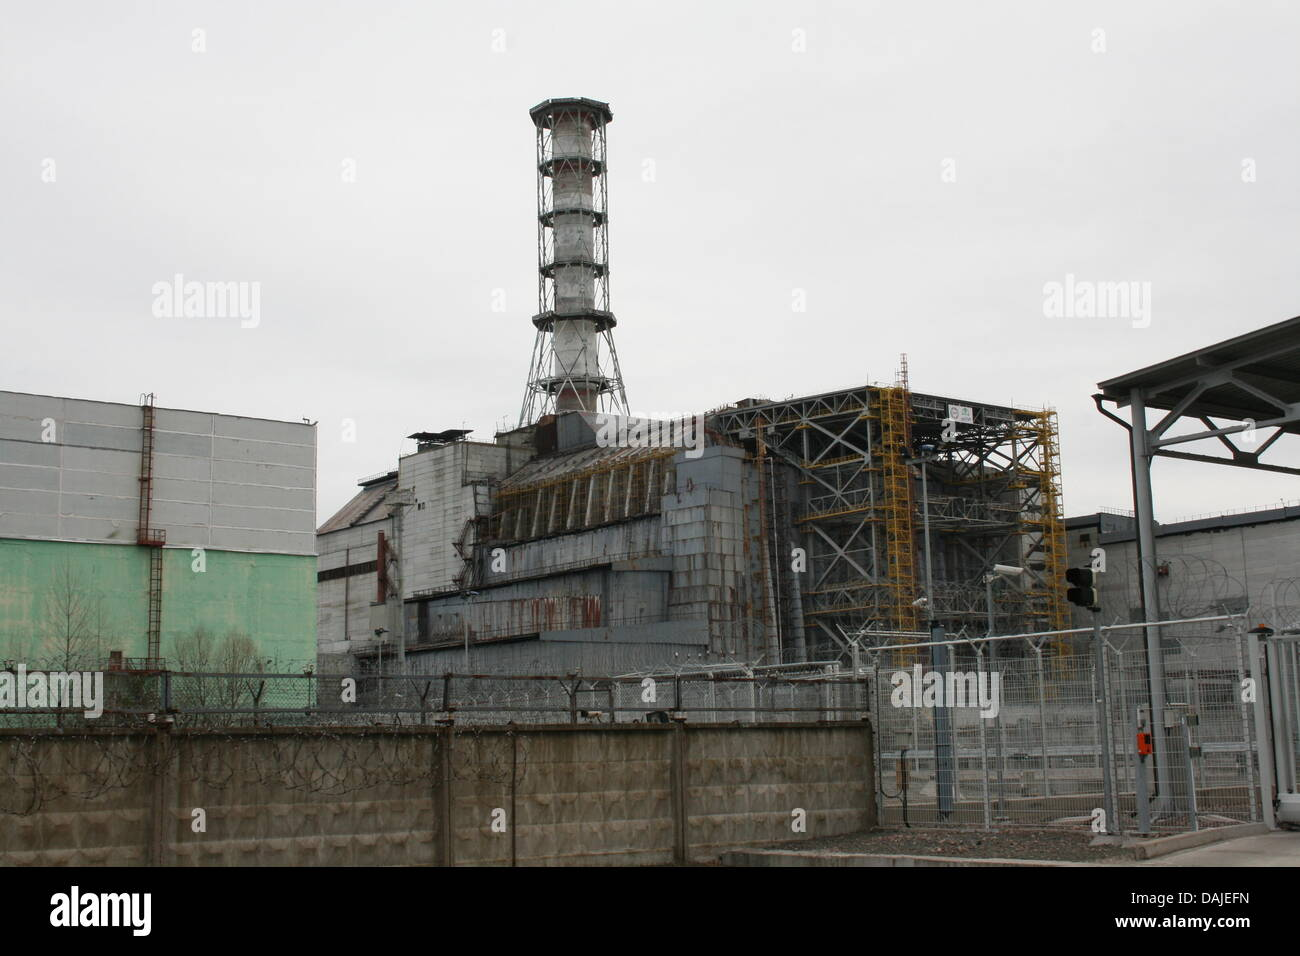 Director chernobyl nuclear power plant stock photos director a view of the destroyed accident reacter 4 at the nuclear power plant in chernobyl freerunsca Images